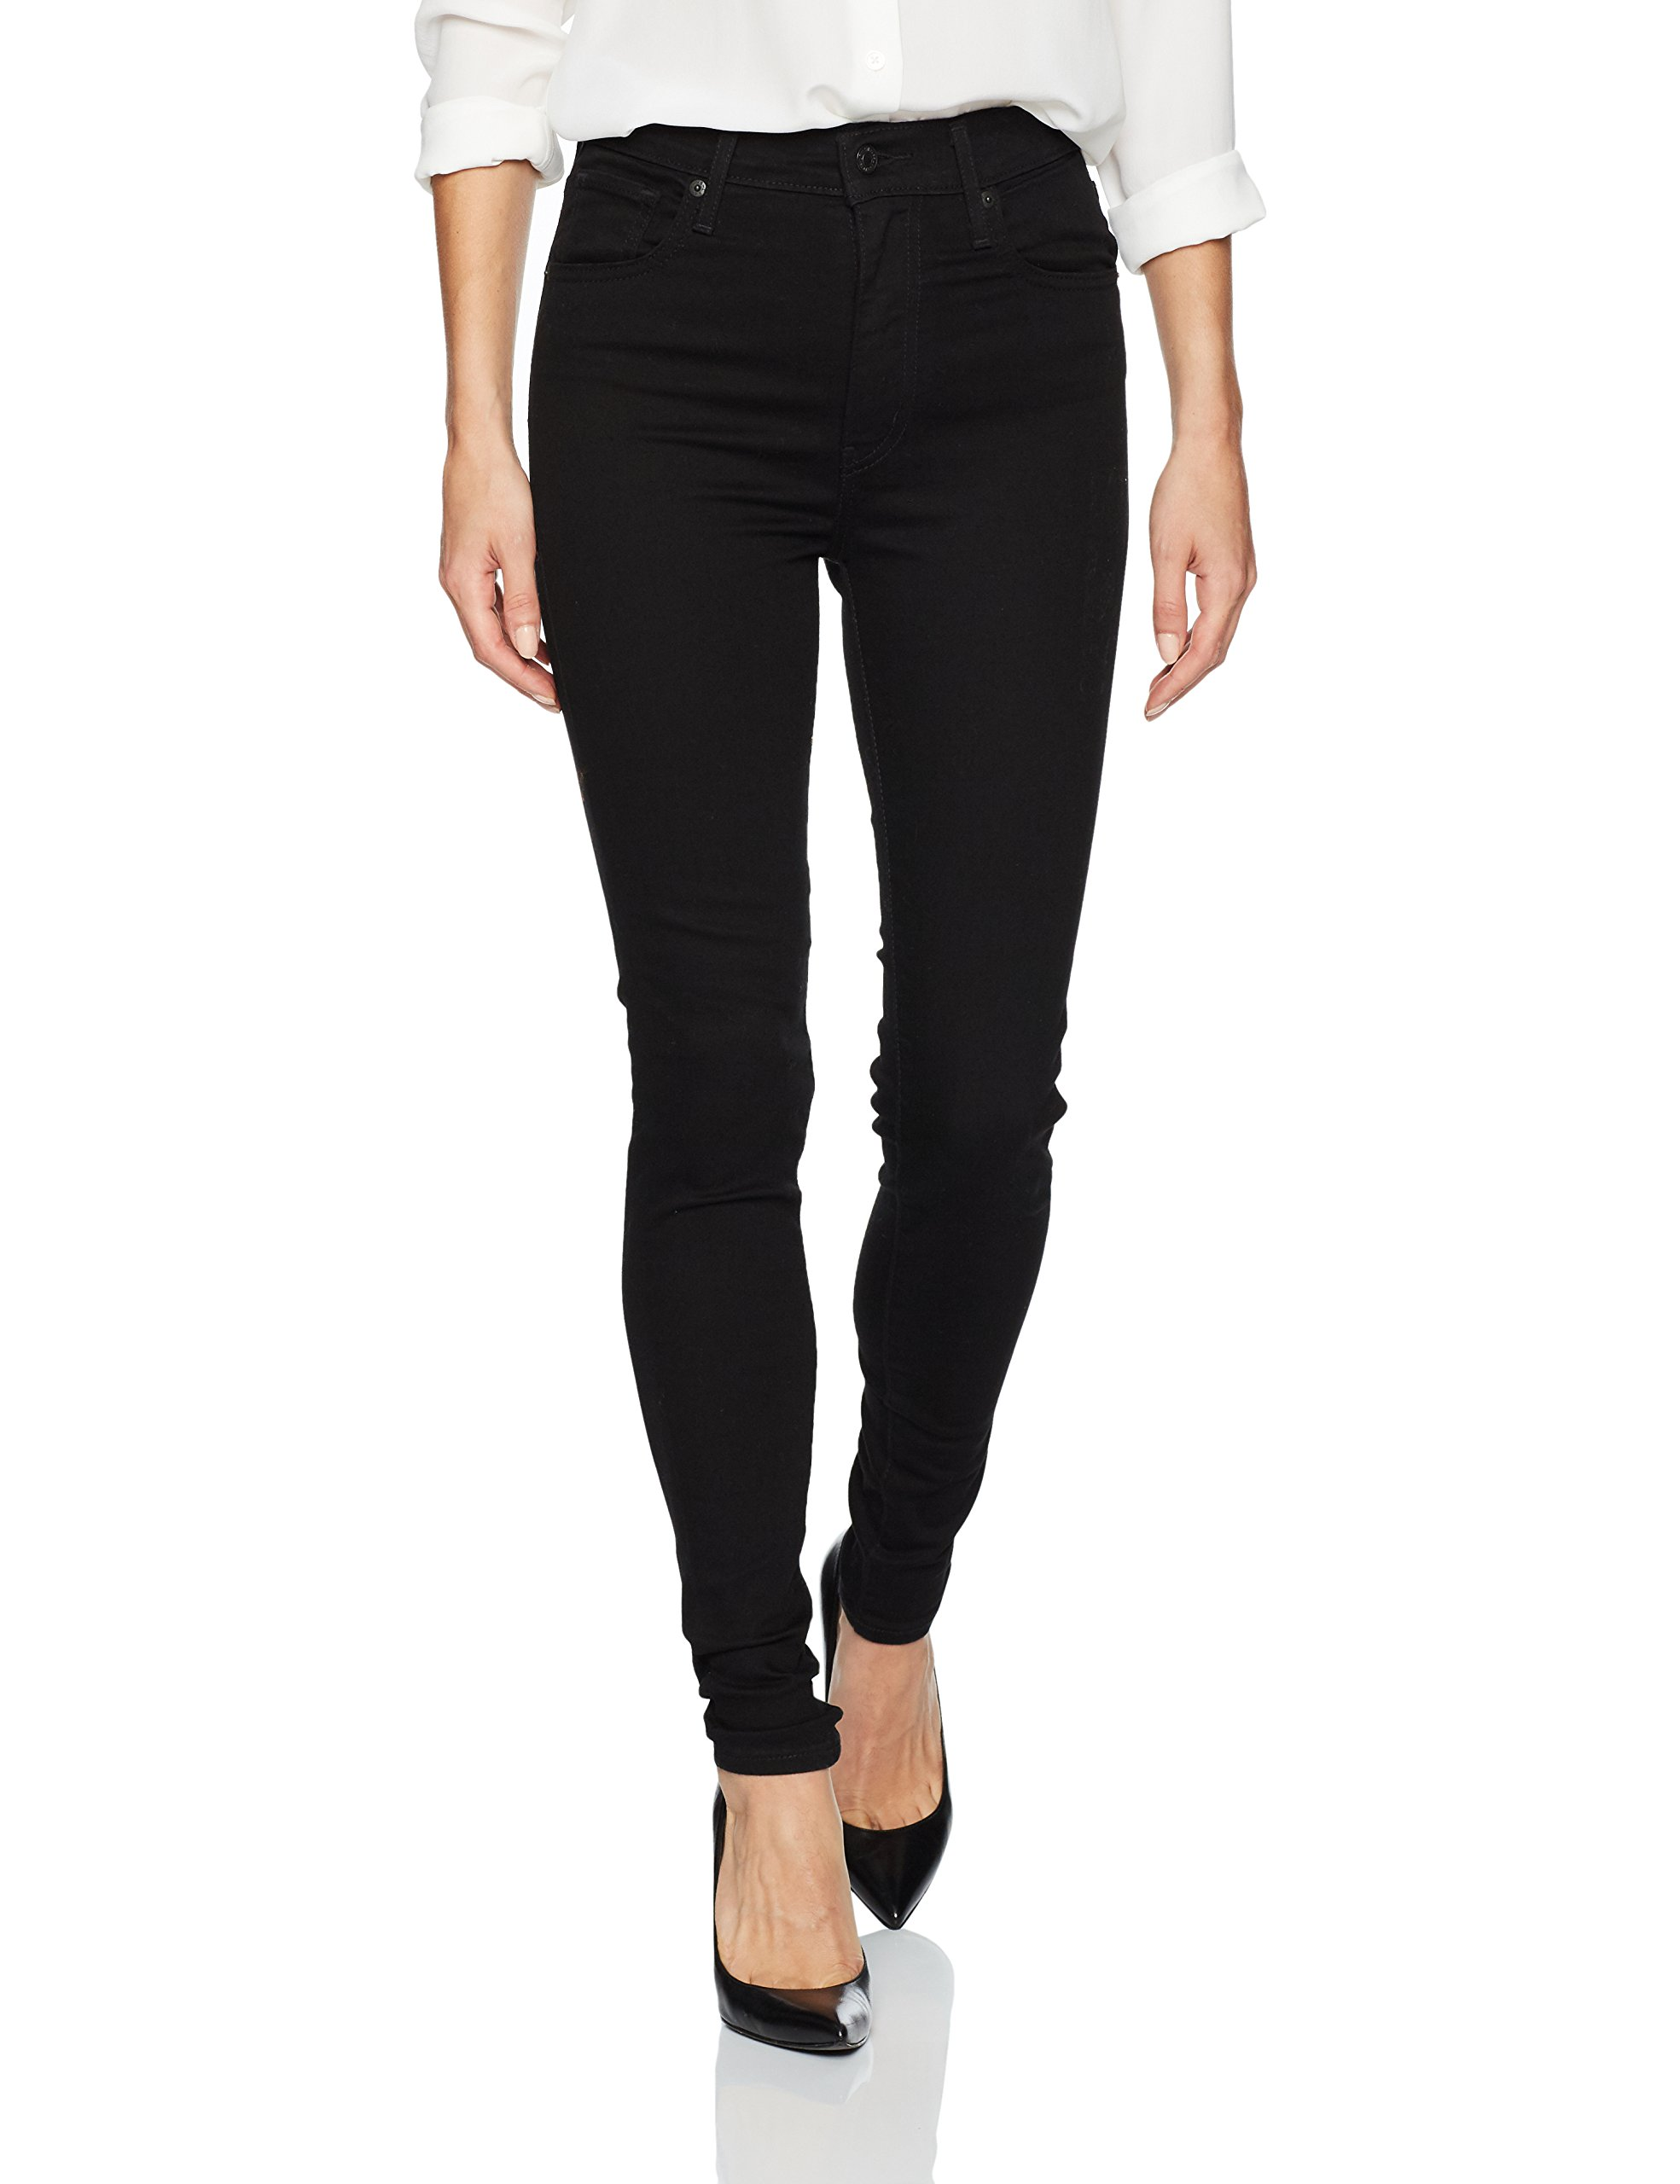 Levi's Women's Mile High Super Skinny Jeans, New Moon, 30 (US 10) R